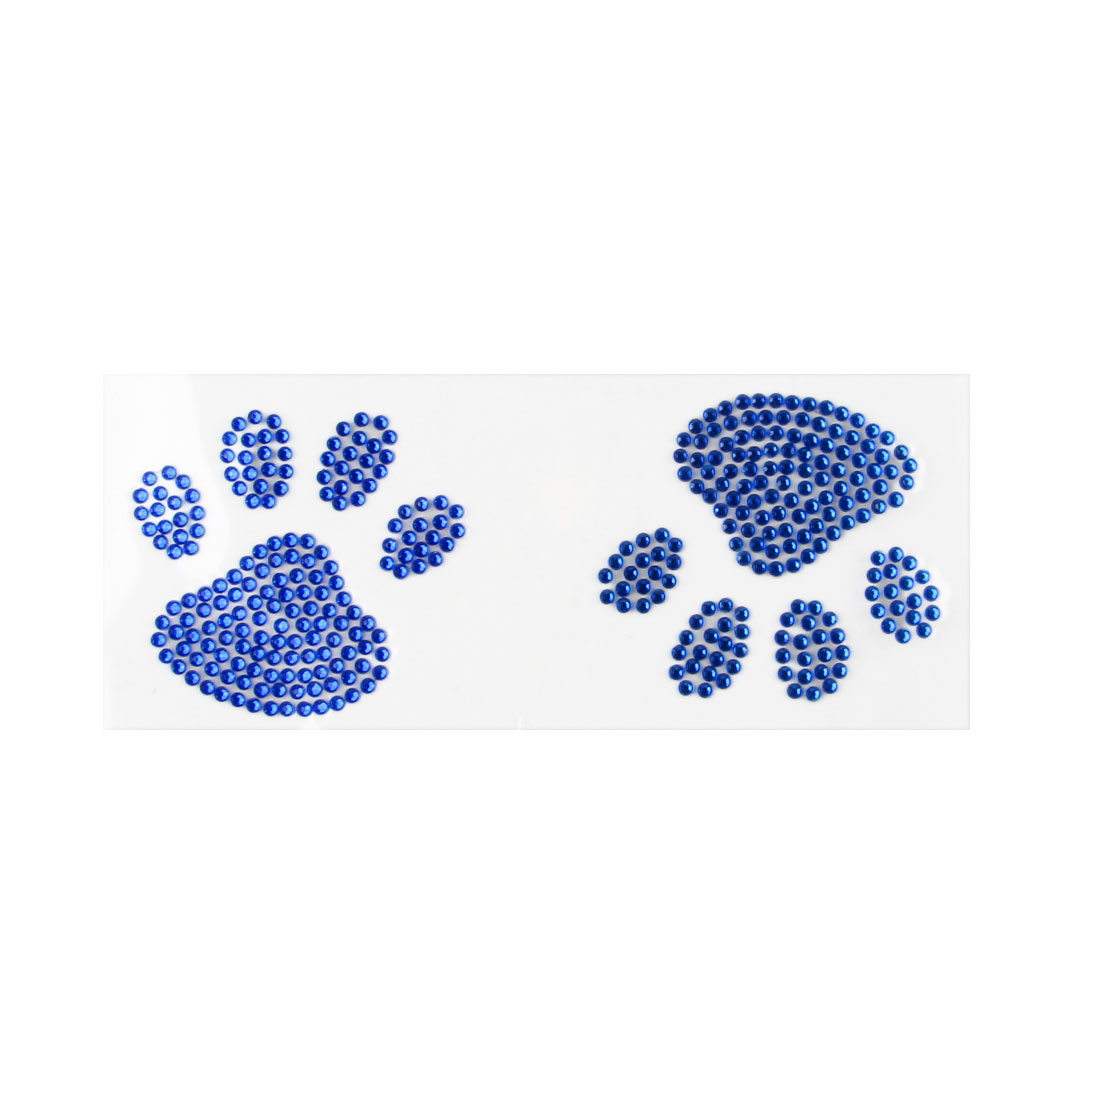 Blue Bling Rhinestone Accent Footprint Auto Car Vehicle Decal Sticker